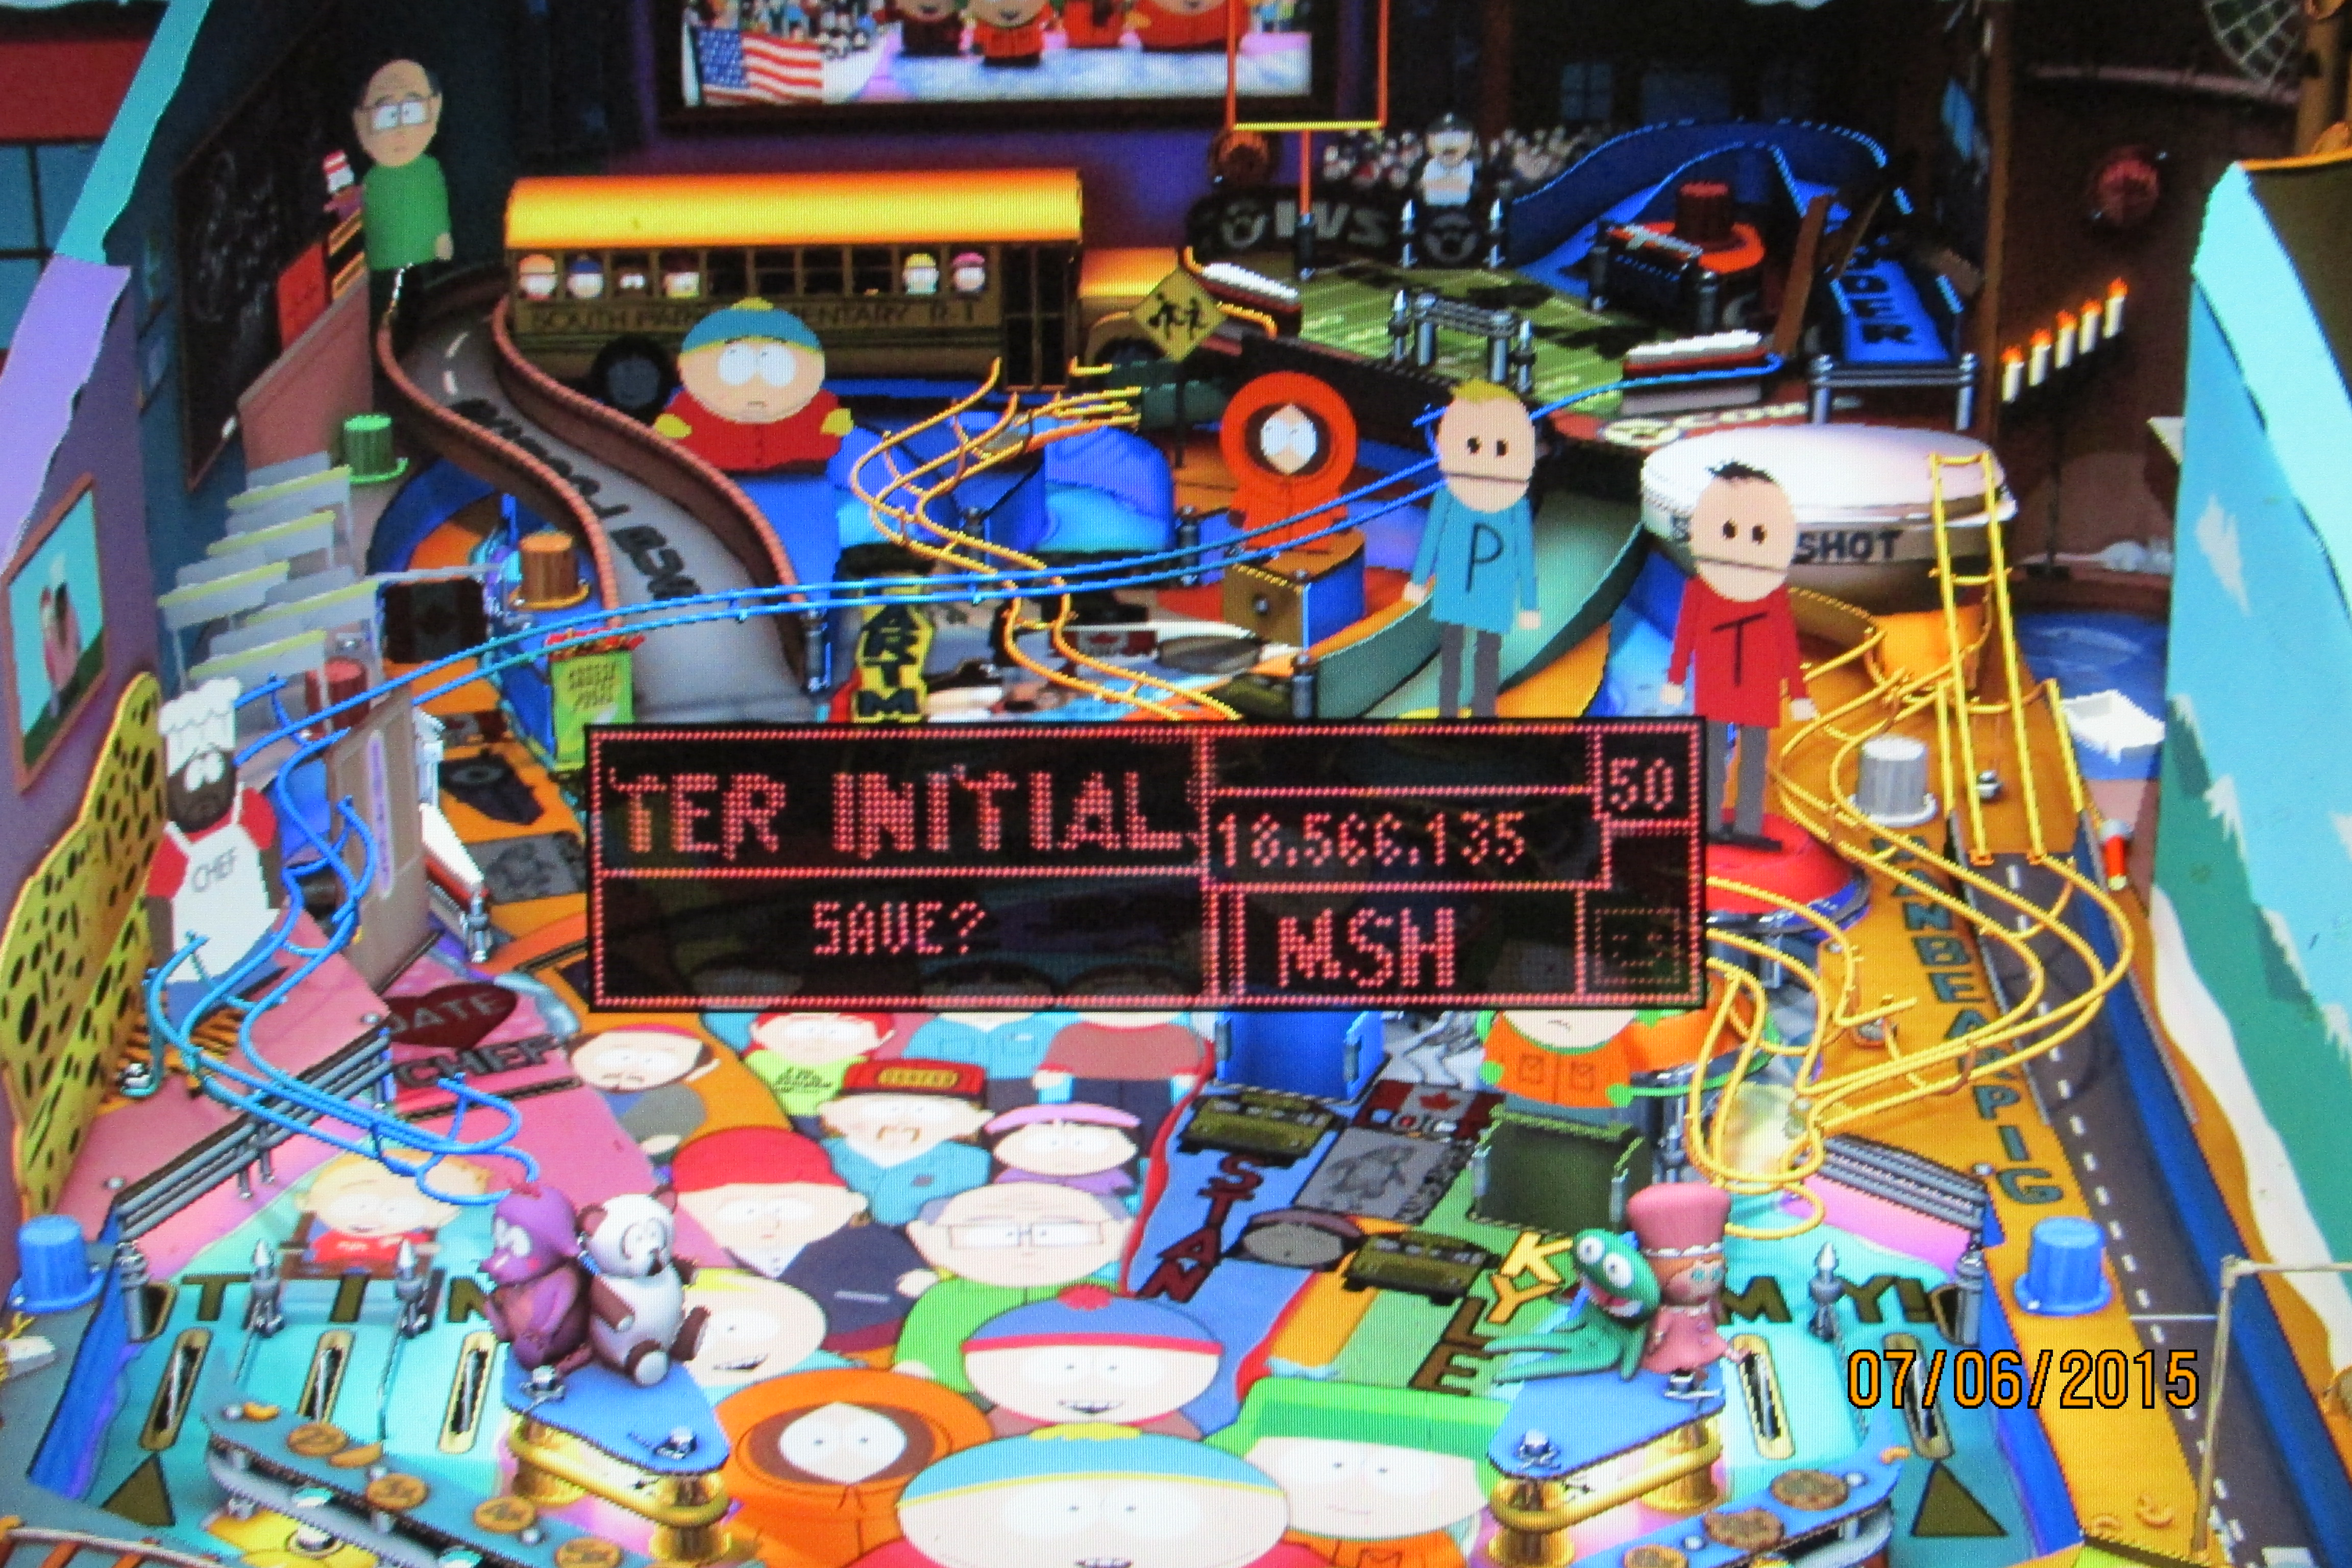 Mark: Pinball FX 2: Super Sweet Pinball (PC) 18,566,135 points on 2015-07-21 17:12:42